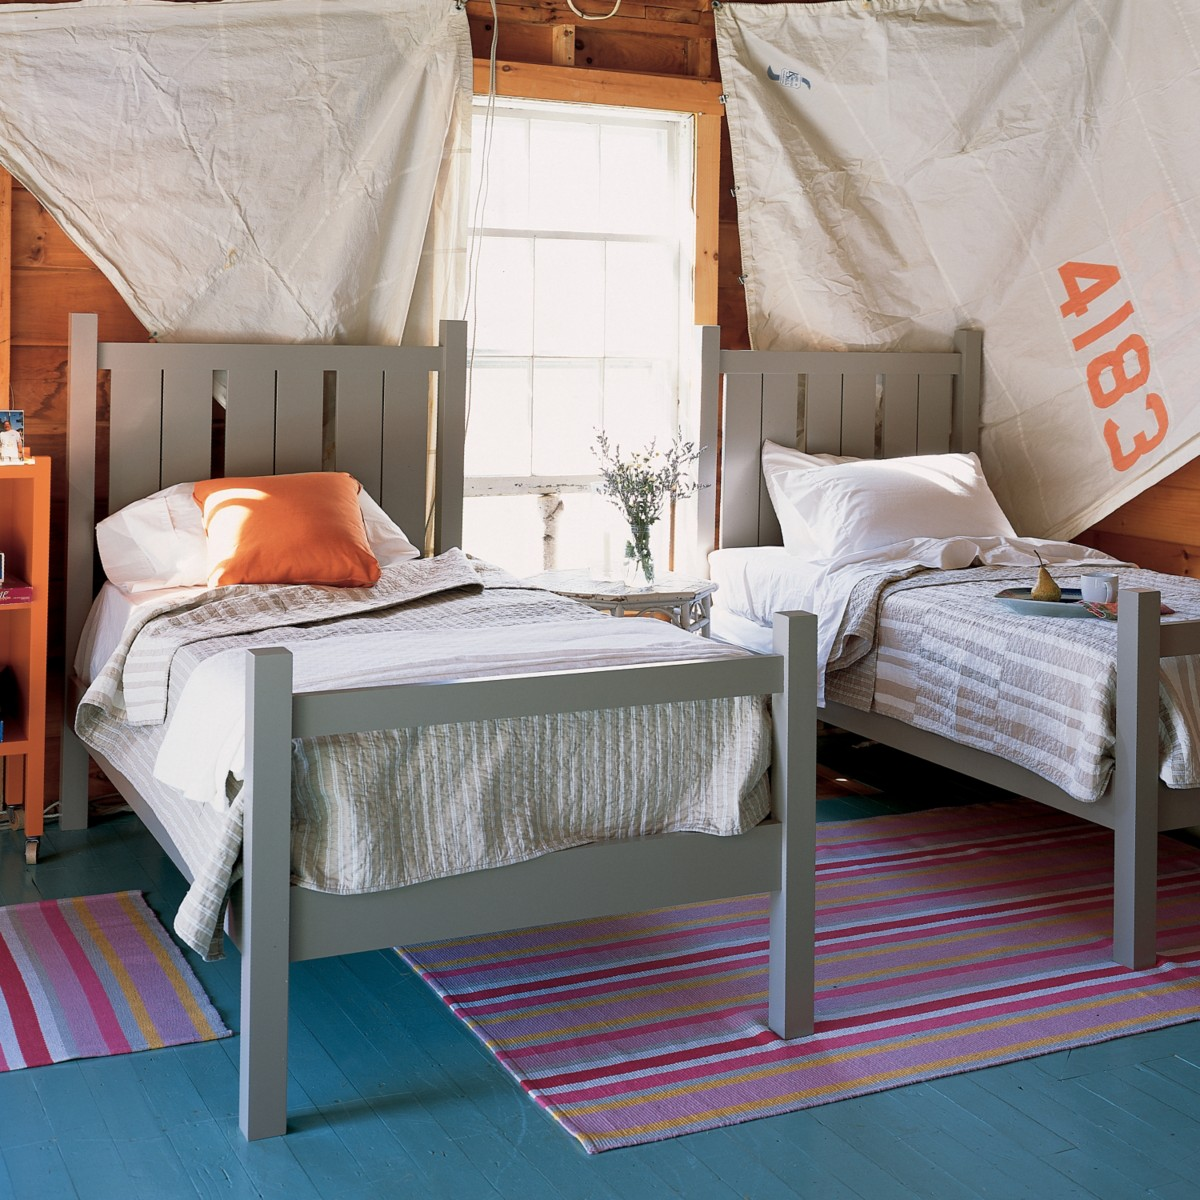 shutter bed by maine cottage where color lives rh mainecottage com maine cottage bedroom furniture maine cottage furniture beds